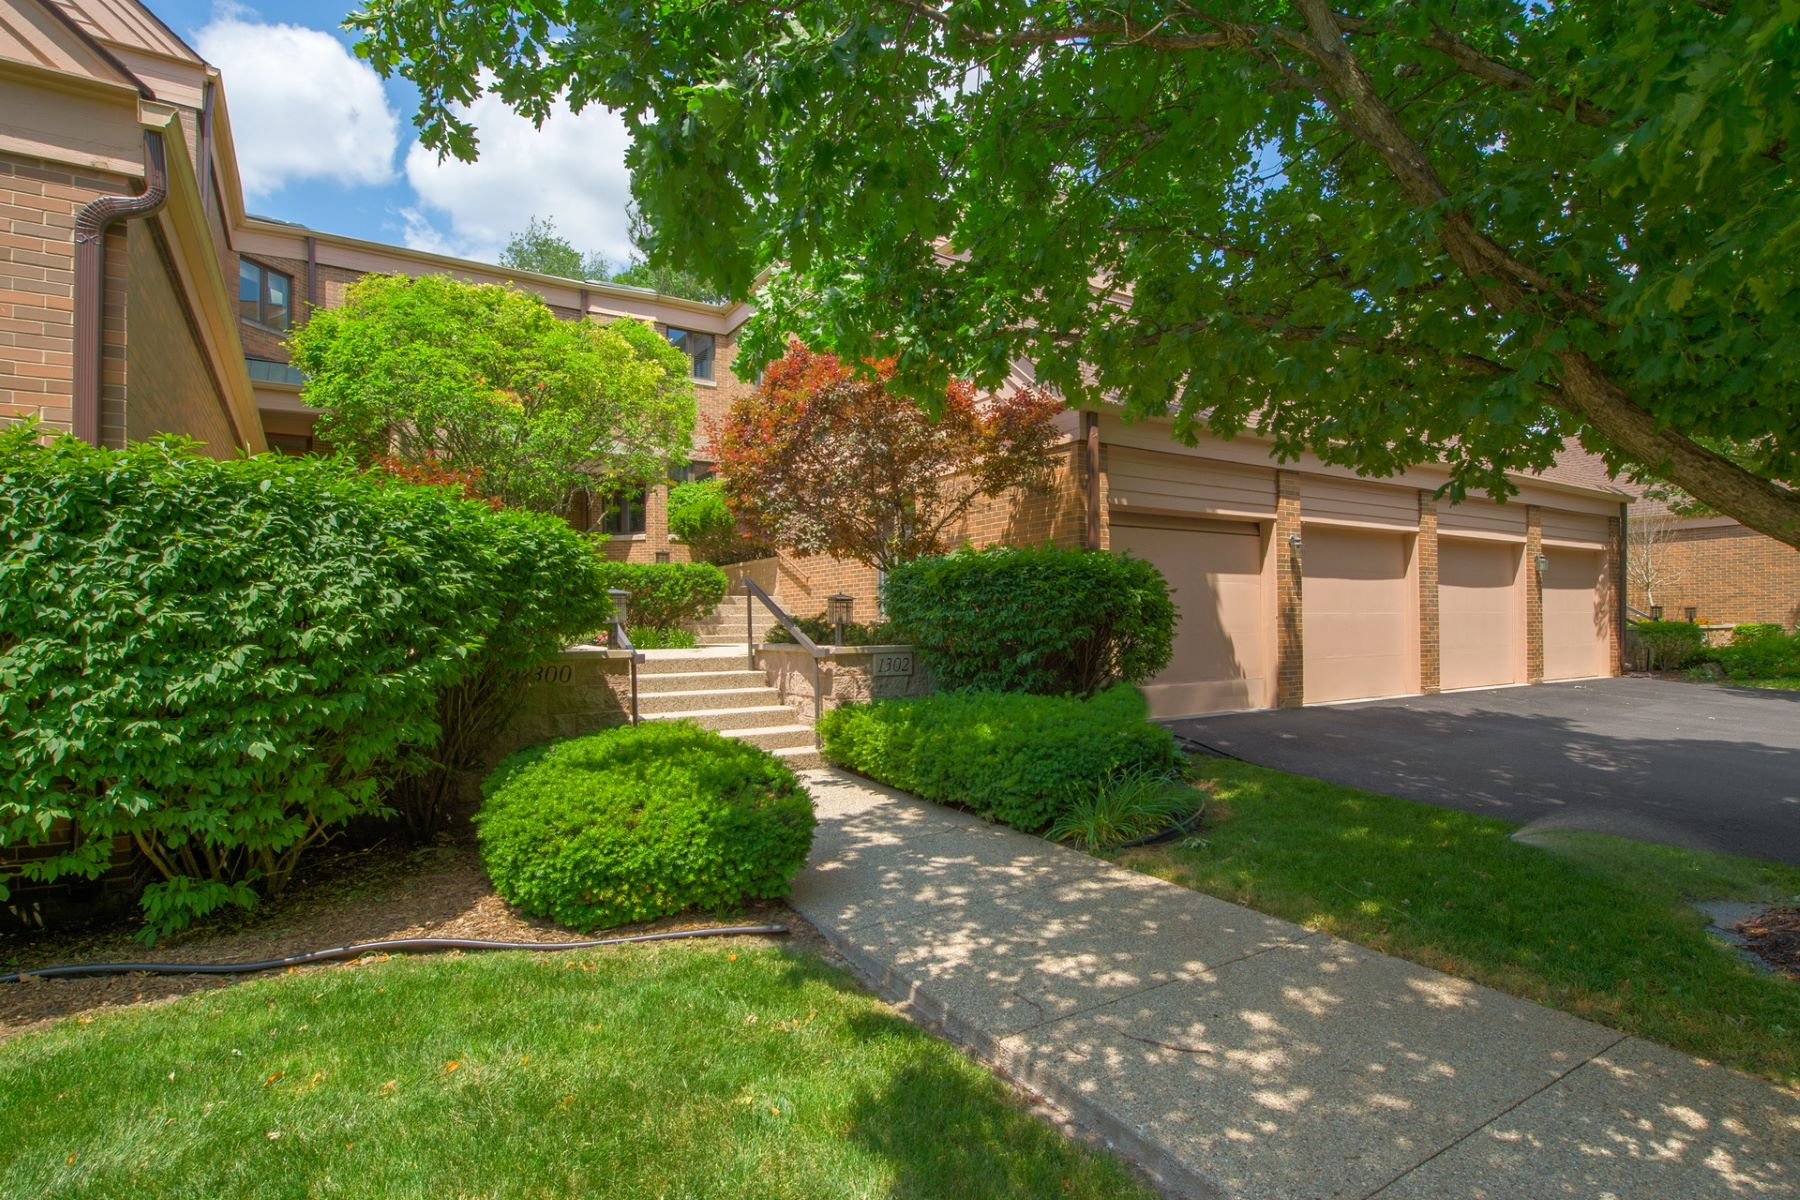 Single Family Home for Sale at 1302 Hawthorne Ln Hinsdale, Illinois, 60521 United States